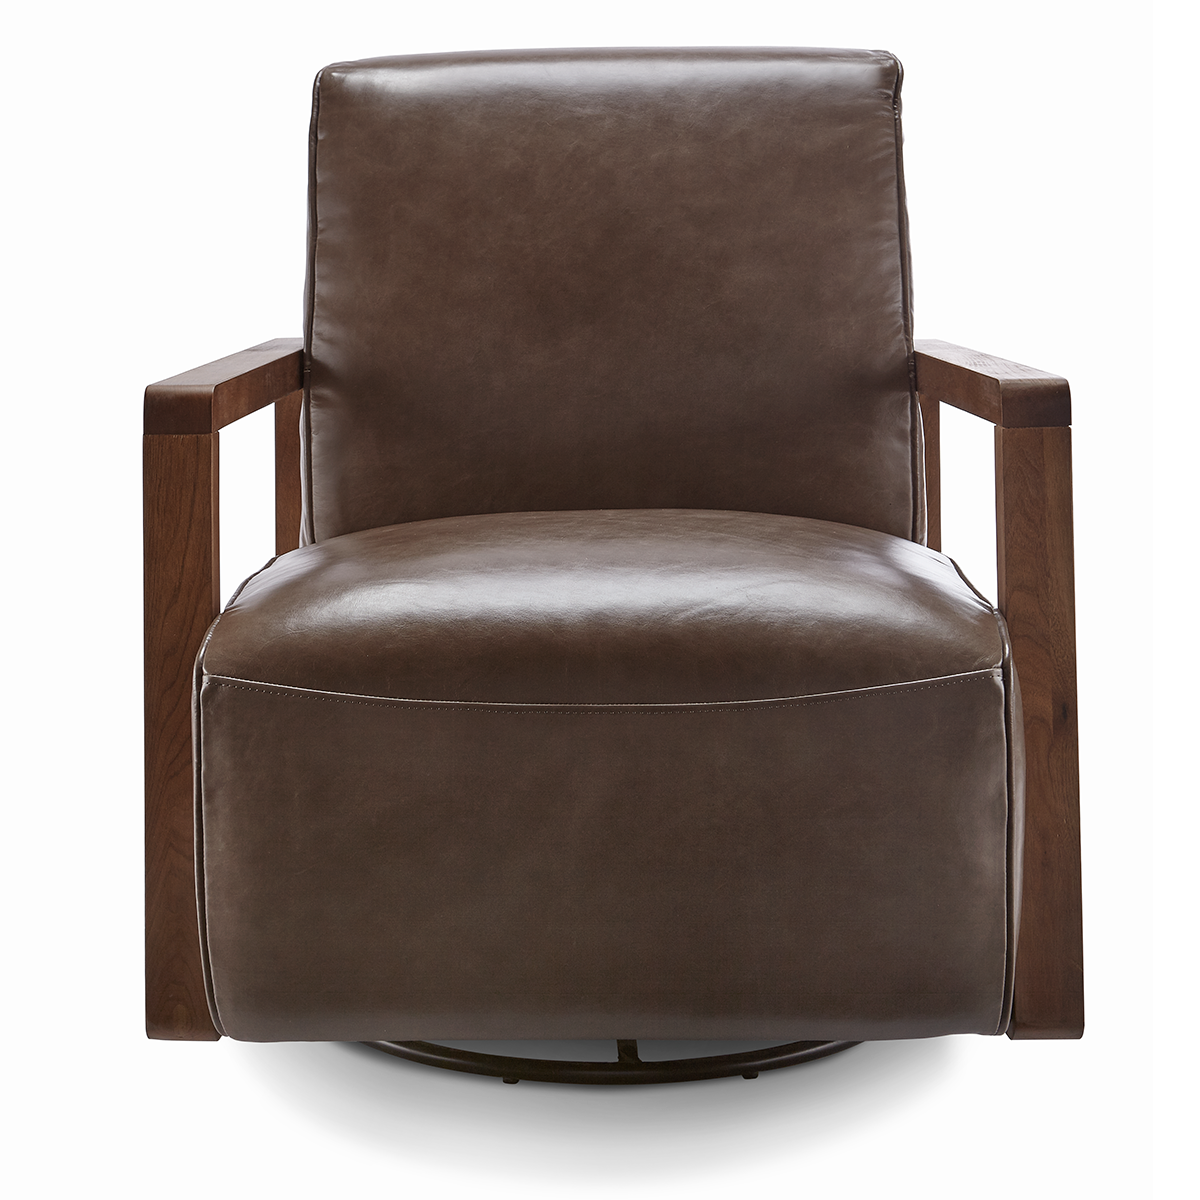 The Melville Swivel Chair emanates modernity with an understated design.